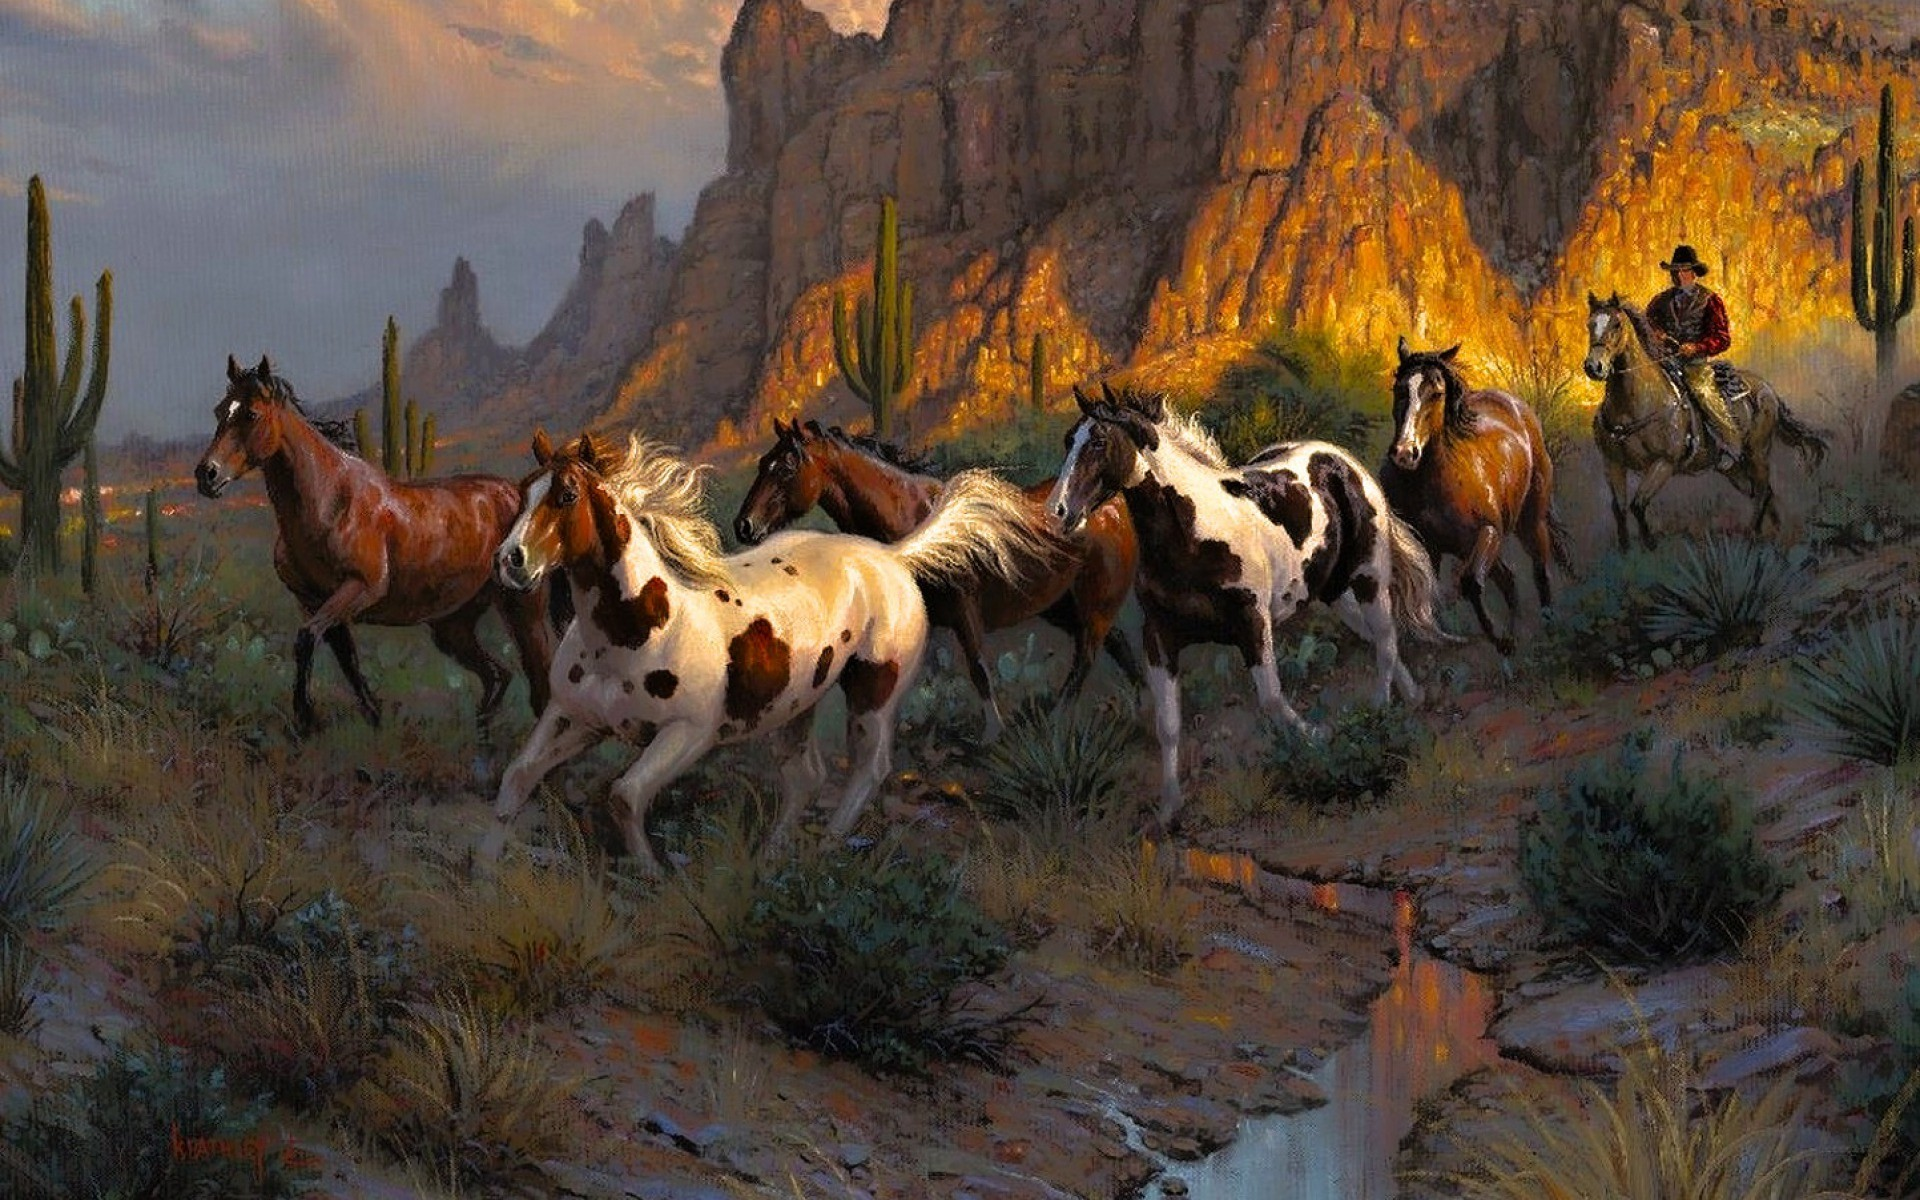 1920x1200 Cowboy Wild Horses Desert wallpapers and stock photos